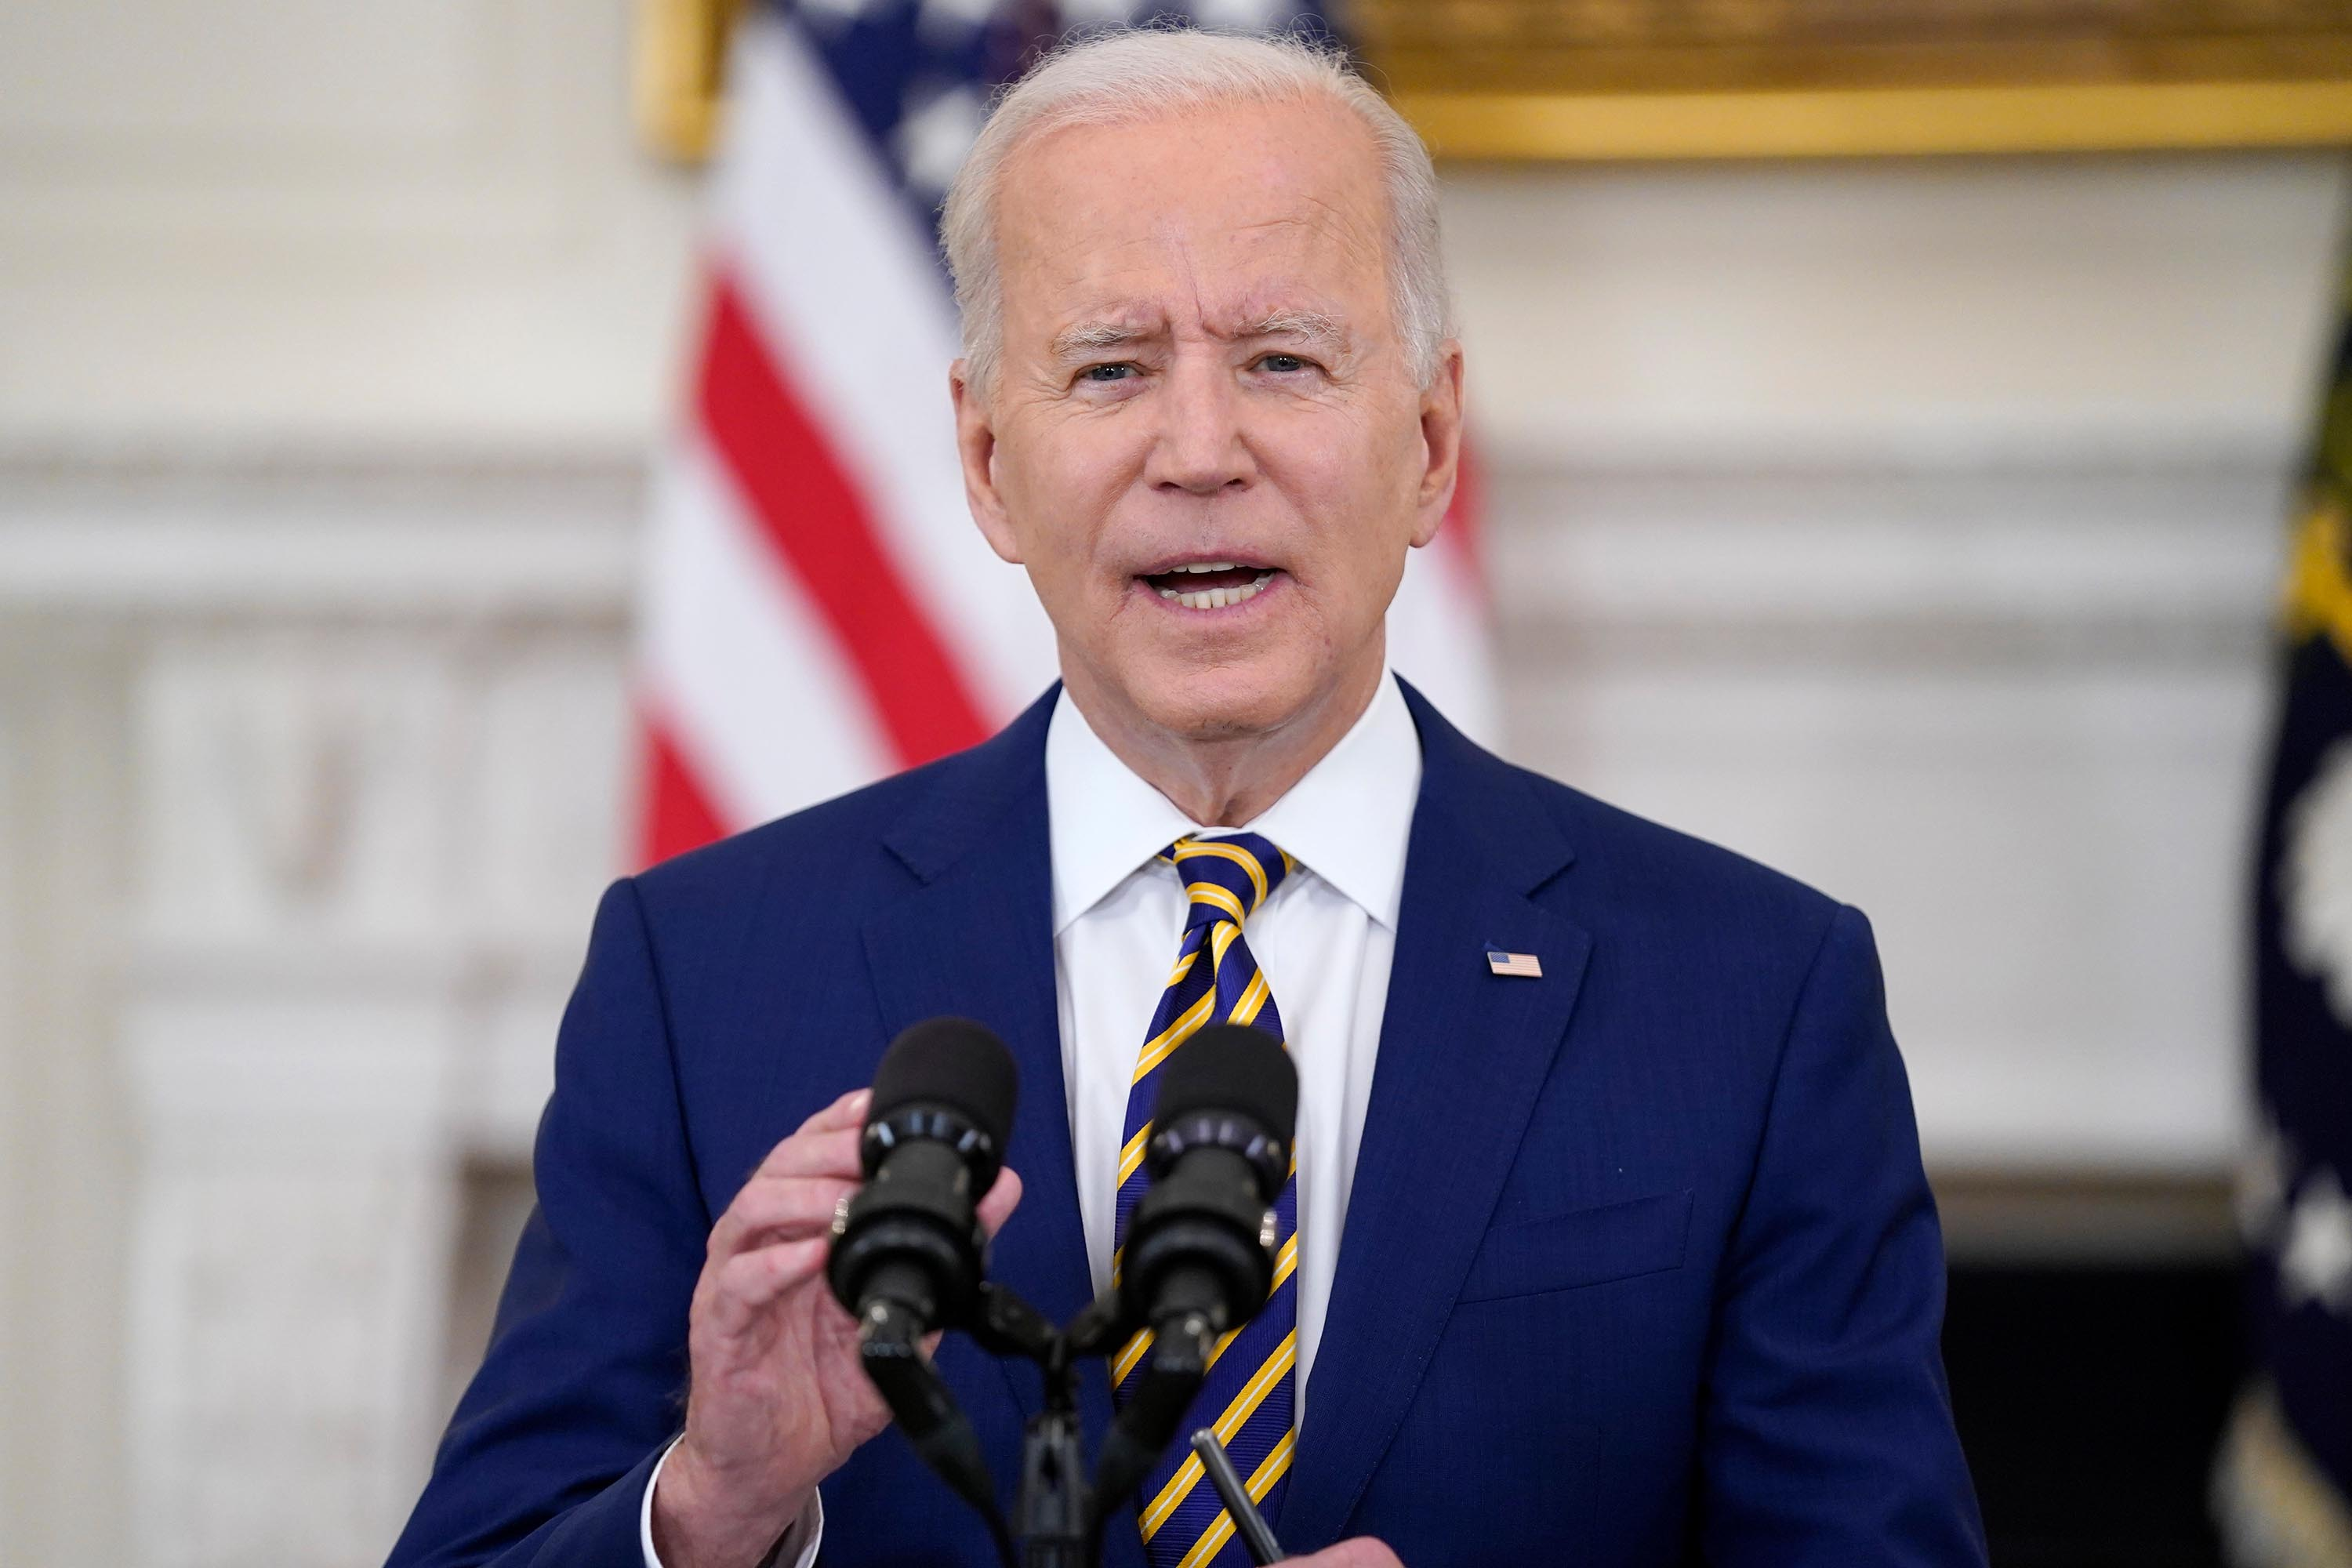 Biden meets with key Democratic senators as he pushes for path on voting, infrastructure